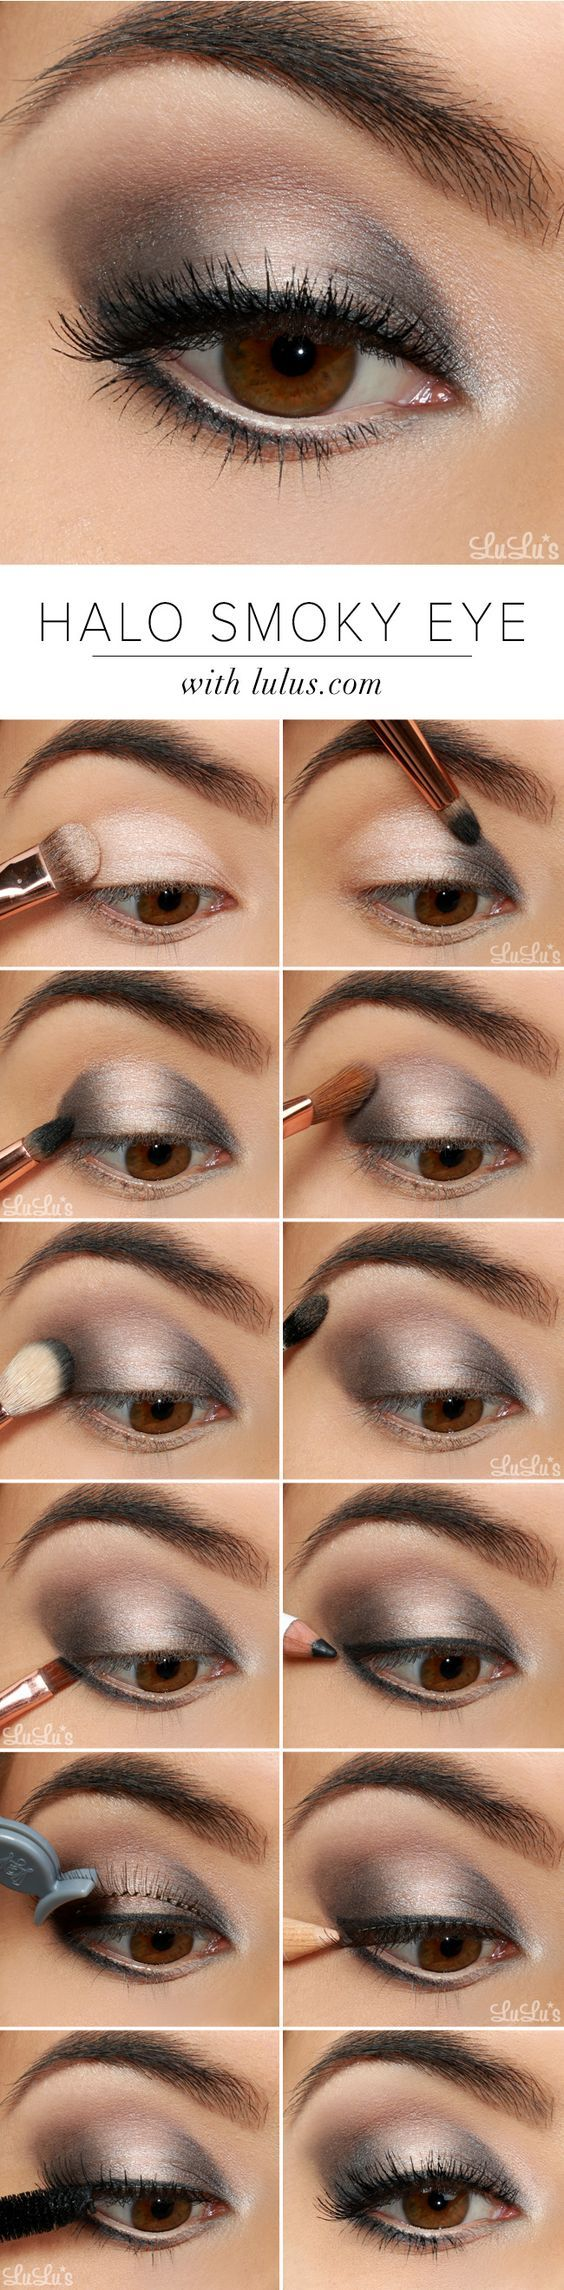 How to apply eyeshadow eye makeup tips for every by eye shape 32 easy step by step eyeshadow tutorials for beginners ccuart Images